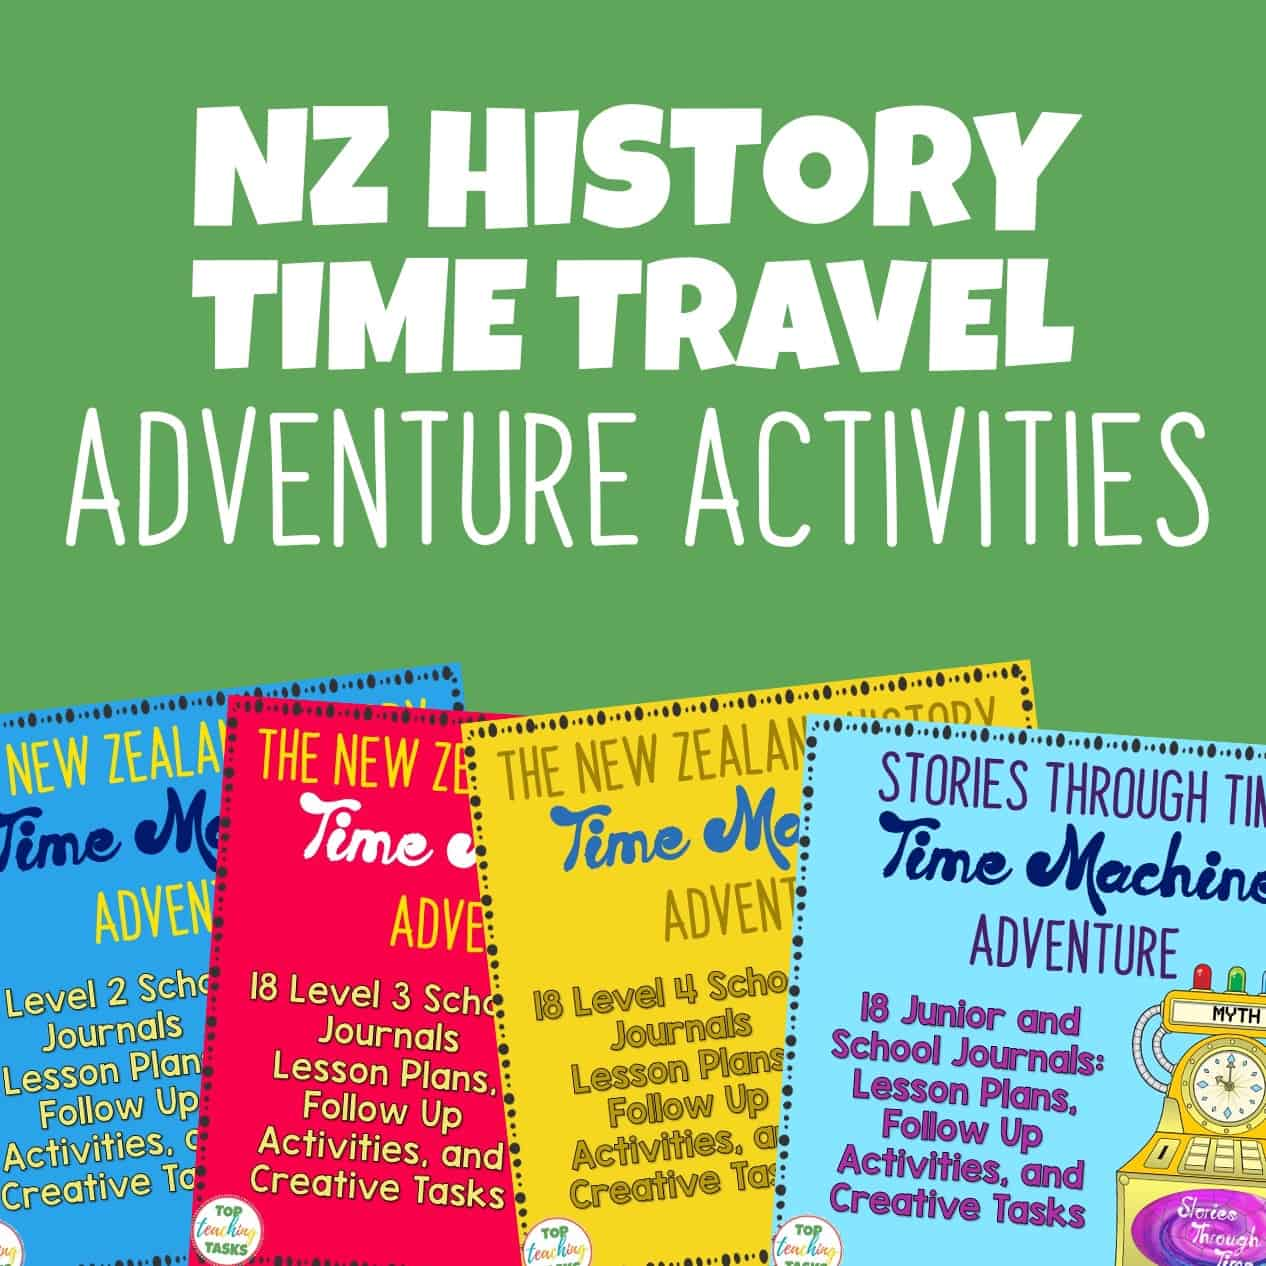 New Zealand History Time Travel Adventures: School Journal Packs